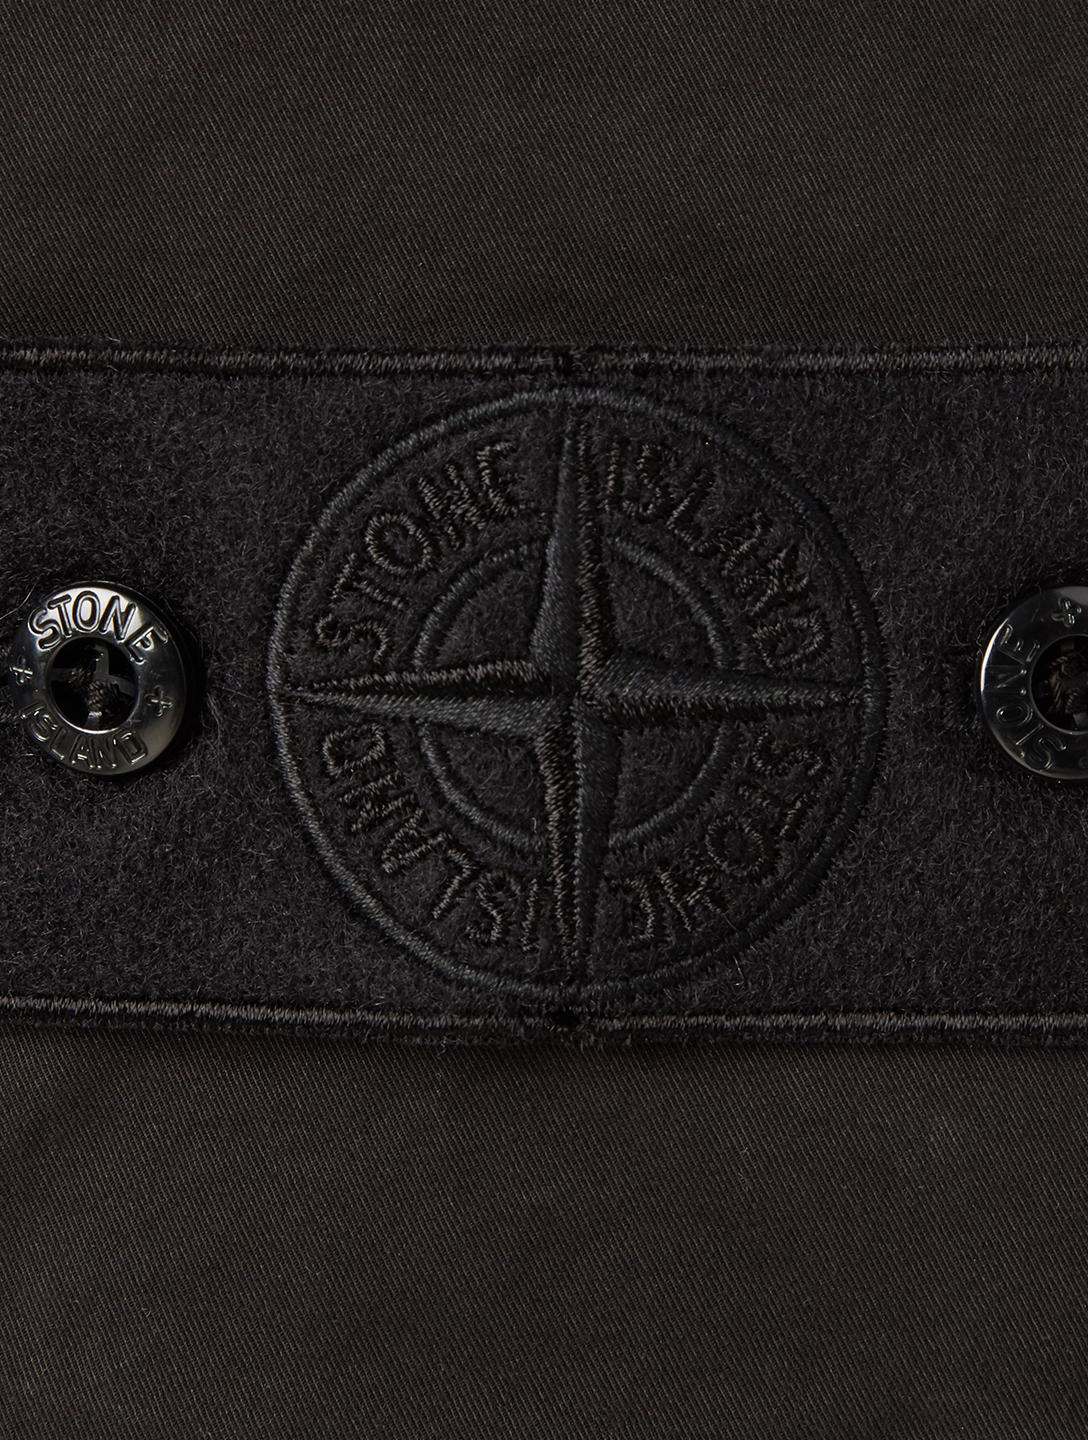 STONE ISLAND Ghost Cargo Pants Men's Black